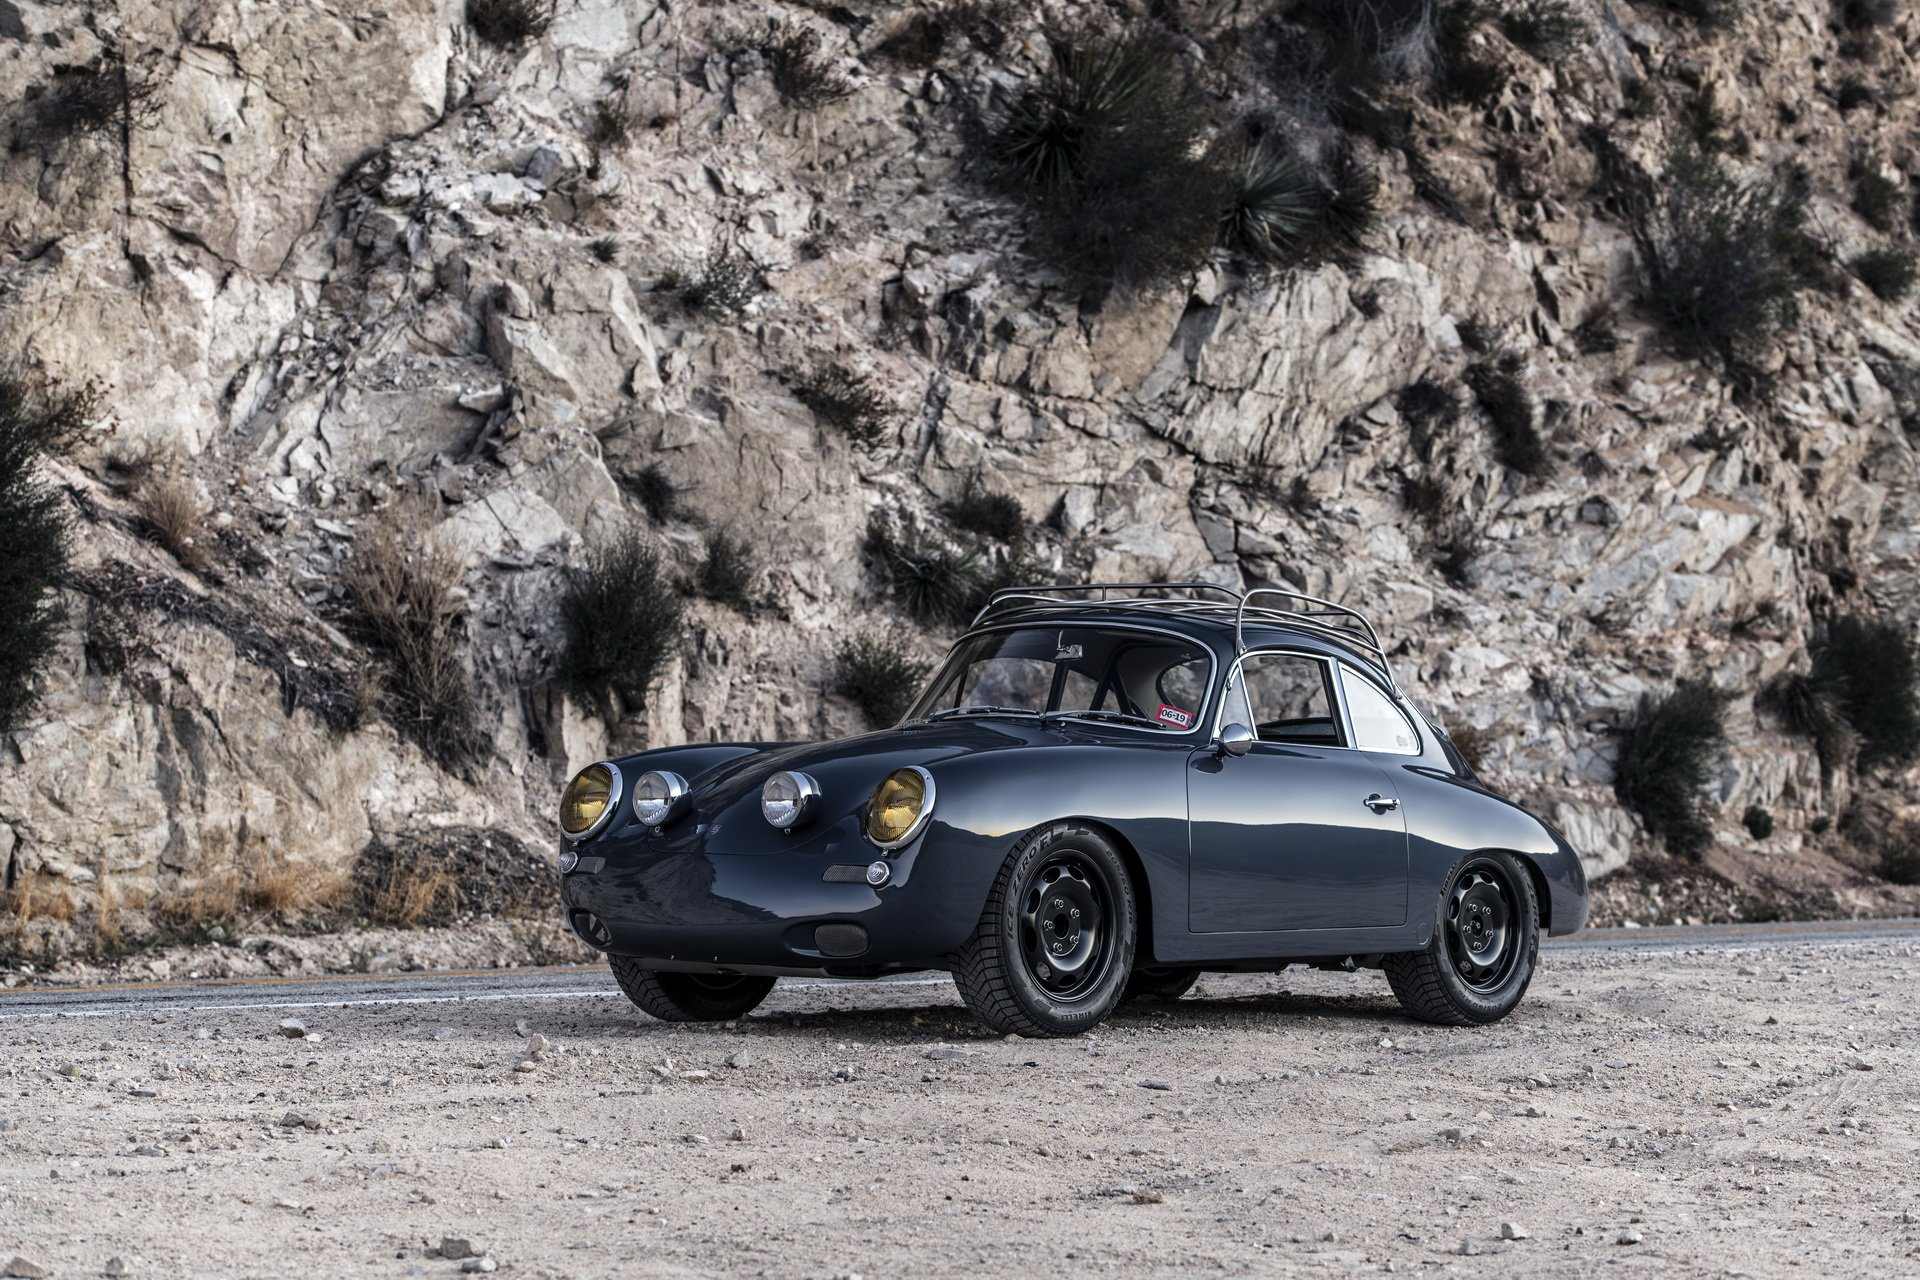 AWD Porsche 356 Coupe by Emory Motorsports (1)